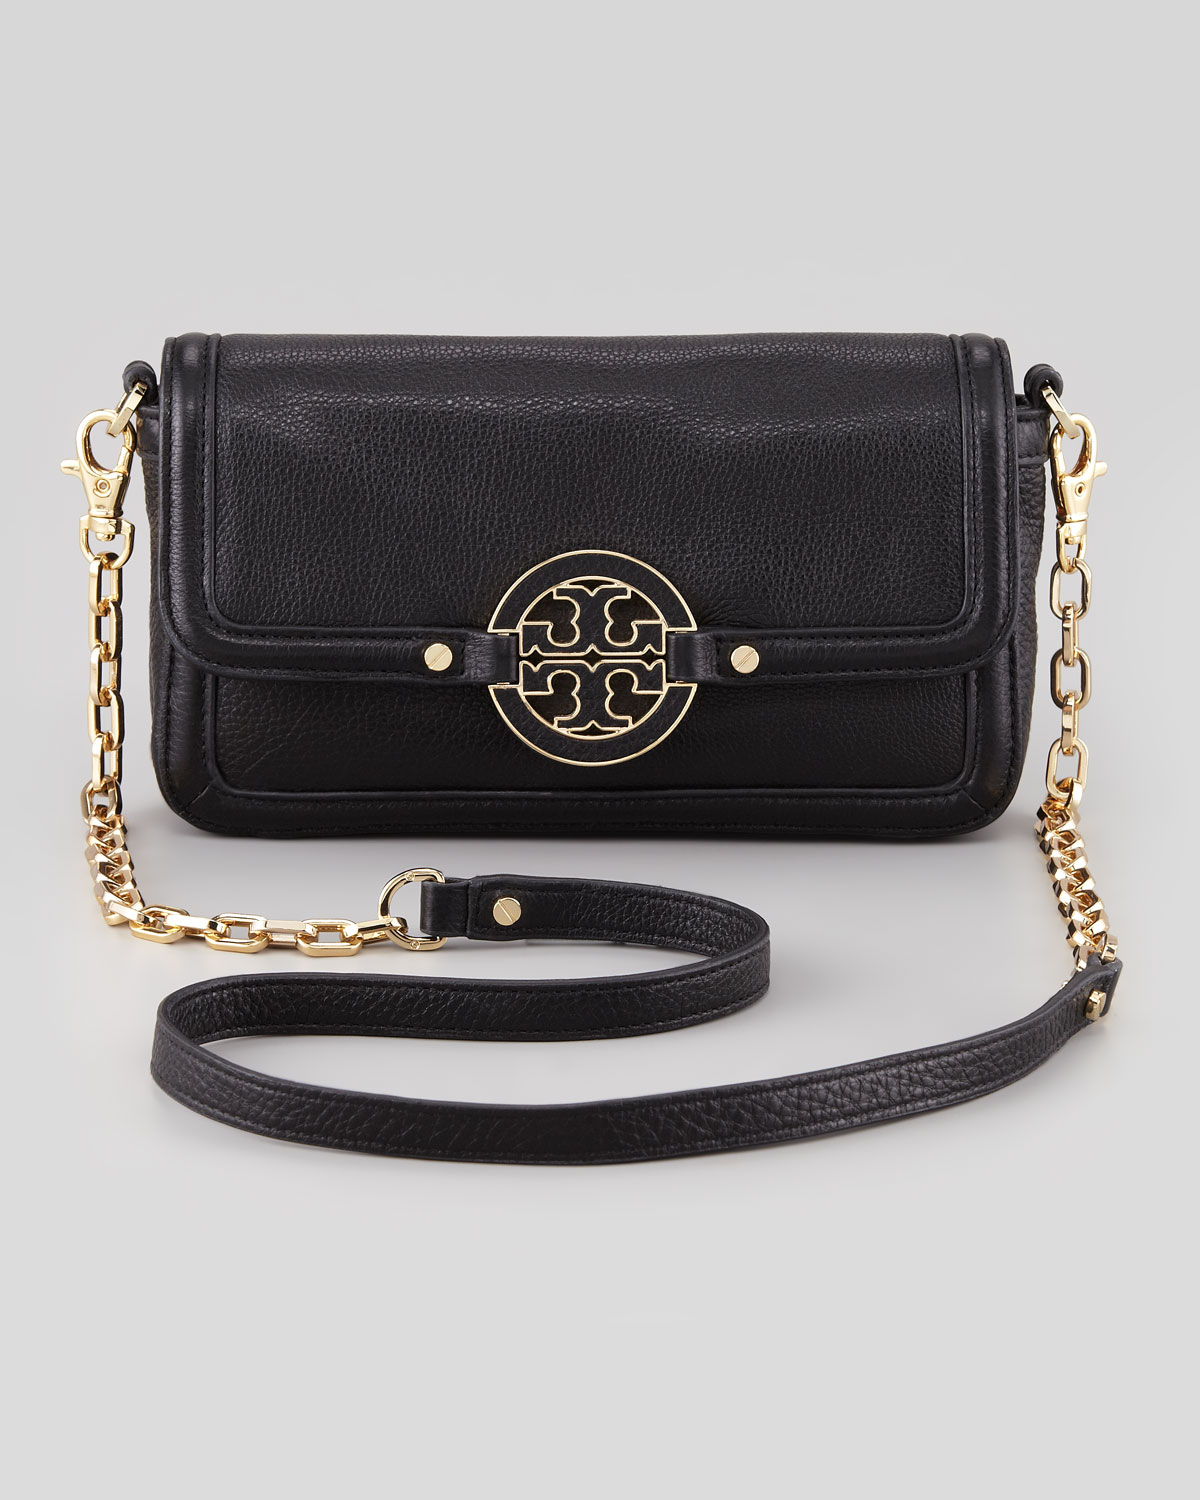 6aa8e52a08b Lyst - Tory Burch Amanda Chain Strap Mini Crossbody Bag Black in Black